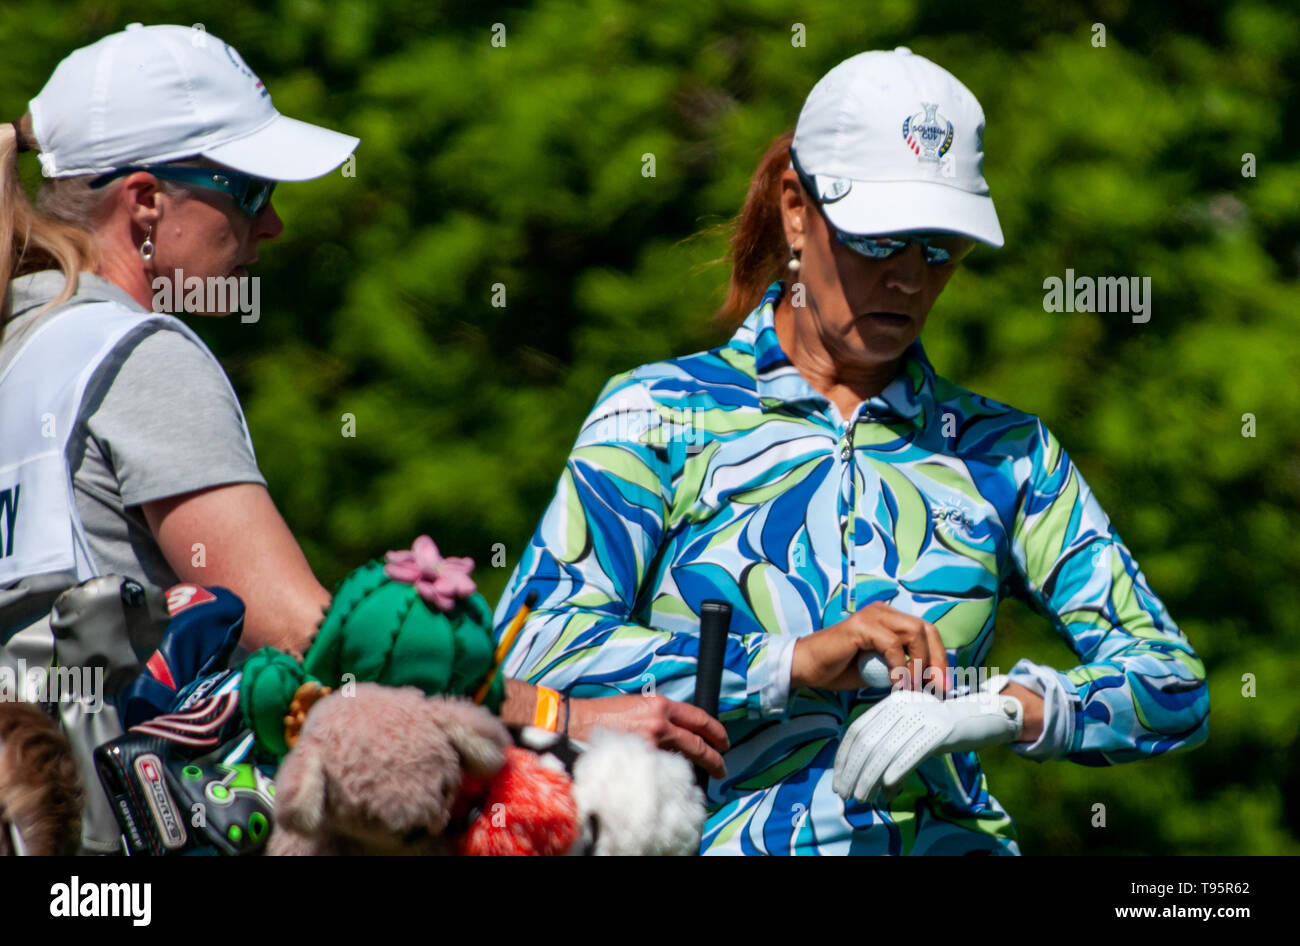 Southern Pines, North Carolina, USA. 16th May, 2019. May 16, 2019 - Southern Pines, North Carolina, US - BARB BUNKOWSKY of Canada prepares to tee off on the 9th hole during the first round of the USGA's 2nd U.S. Senior Women's Open Championship at Pine Needles Lodge & Golf Club, May 16, 2019 in Southern Pines, North Carolina. This is the sixth USGA Championship at Pine Needles dating back to 1989. Credit: Timothy L. Hale/ZUMA Wire/Alamy Live News - Stock Image